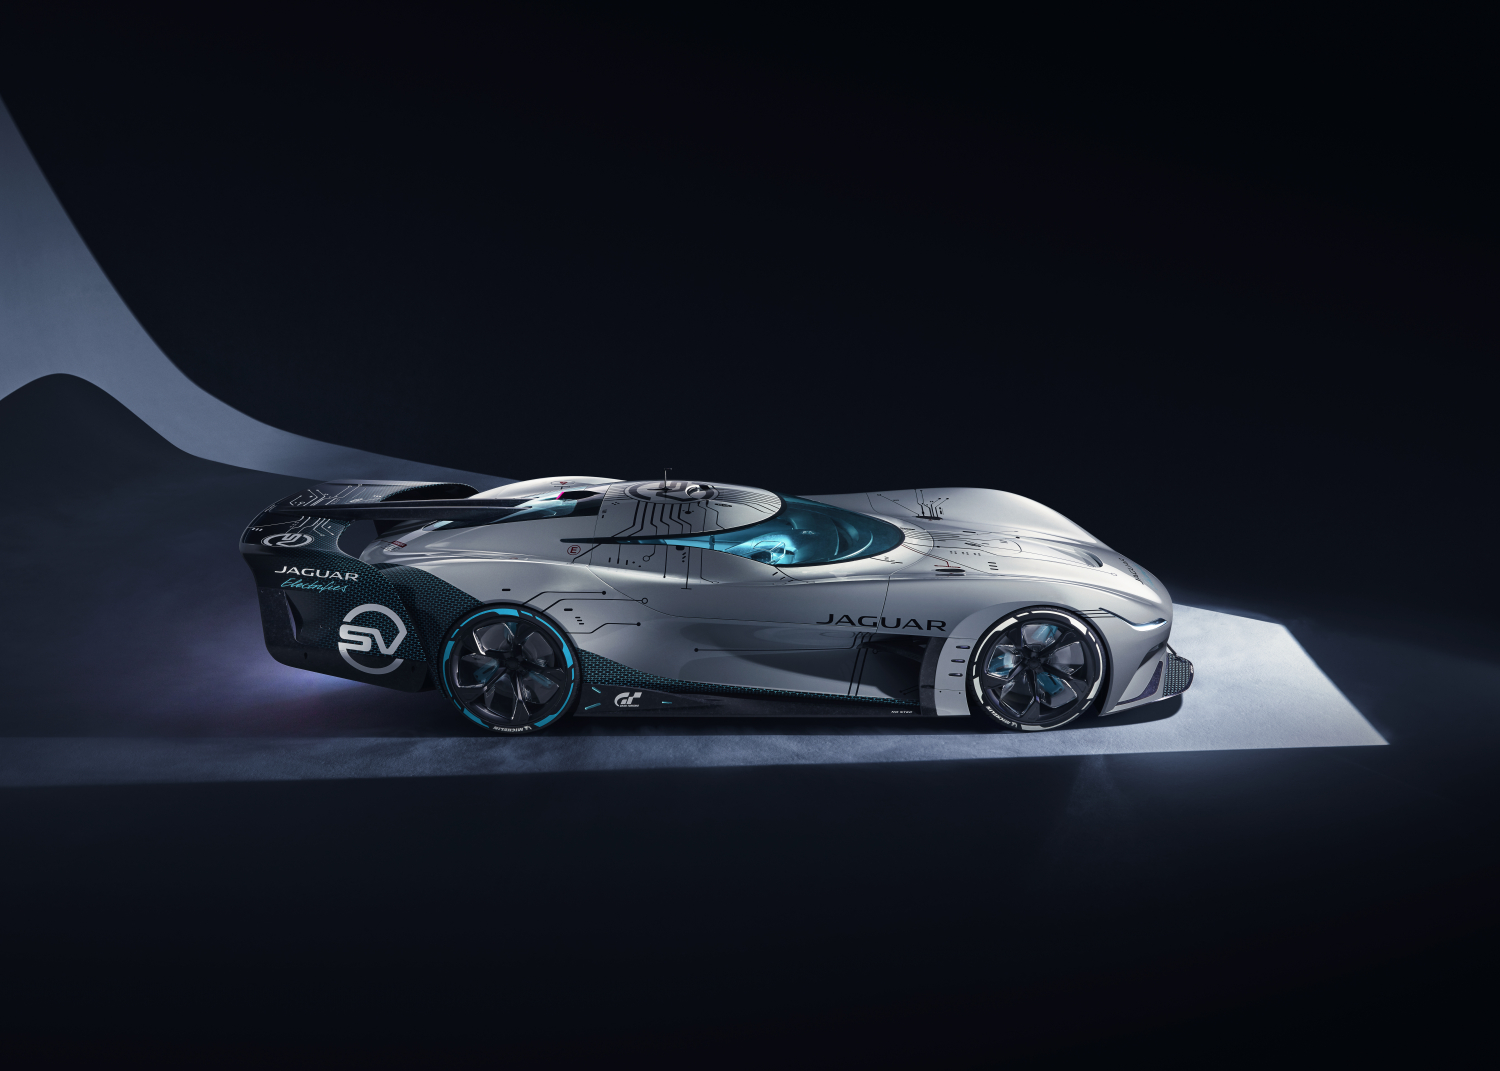 Introducing the Jaguar Vision Gran Turismo Sv: the Ultimate All-electric Gaming Endurance Racer - Image 4